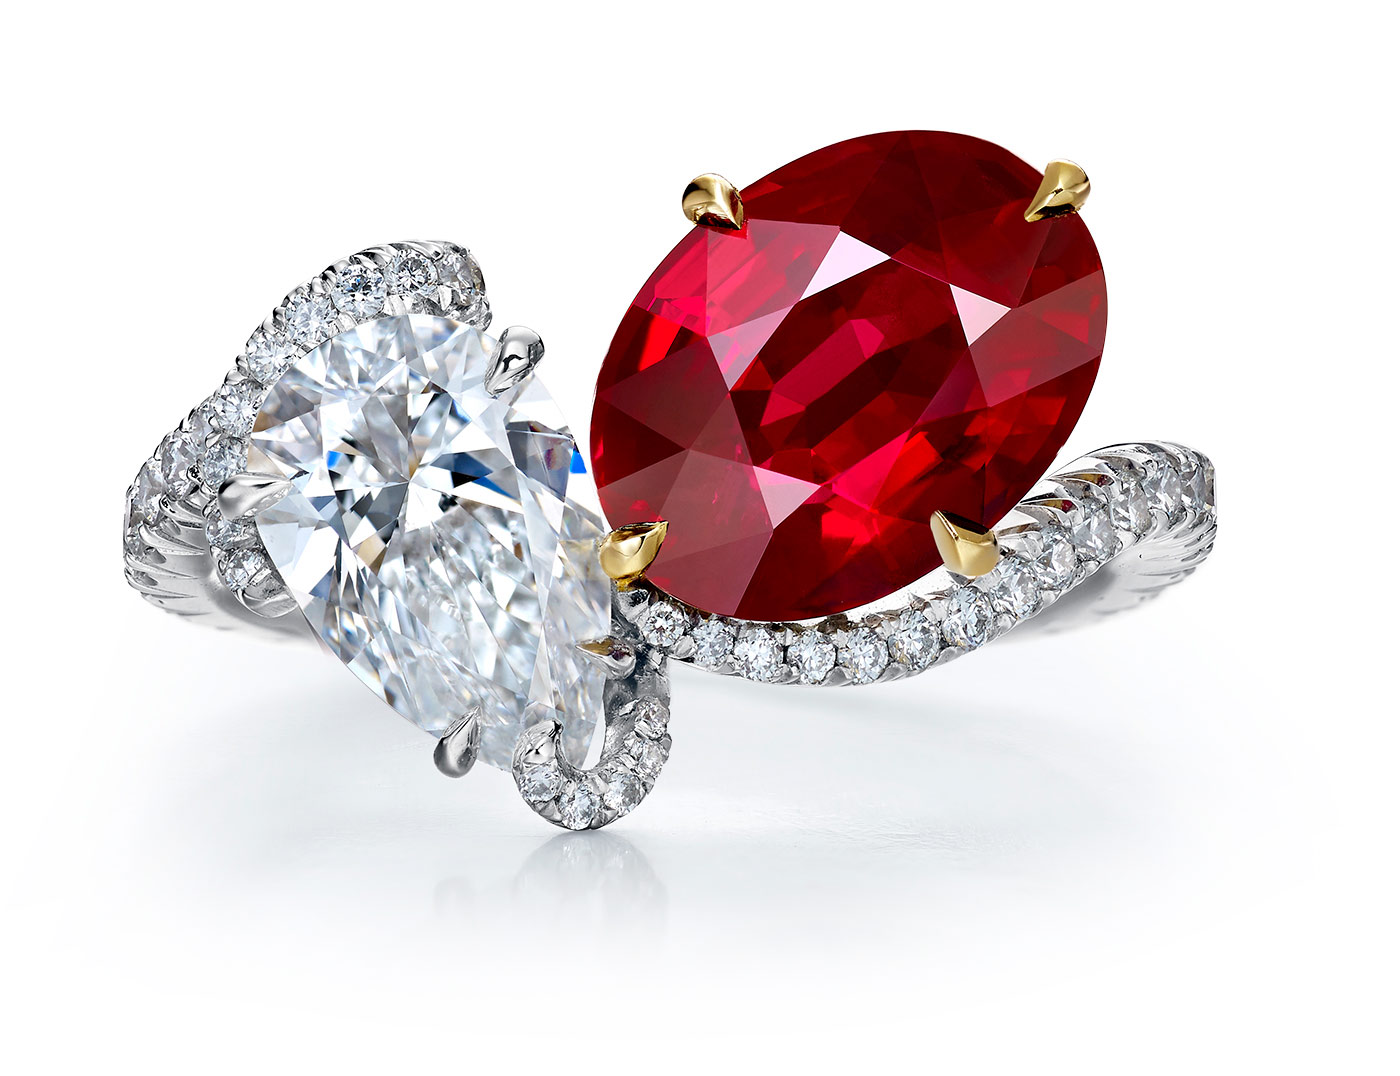 Faidee Burmese Ruby and diamonds ring